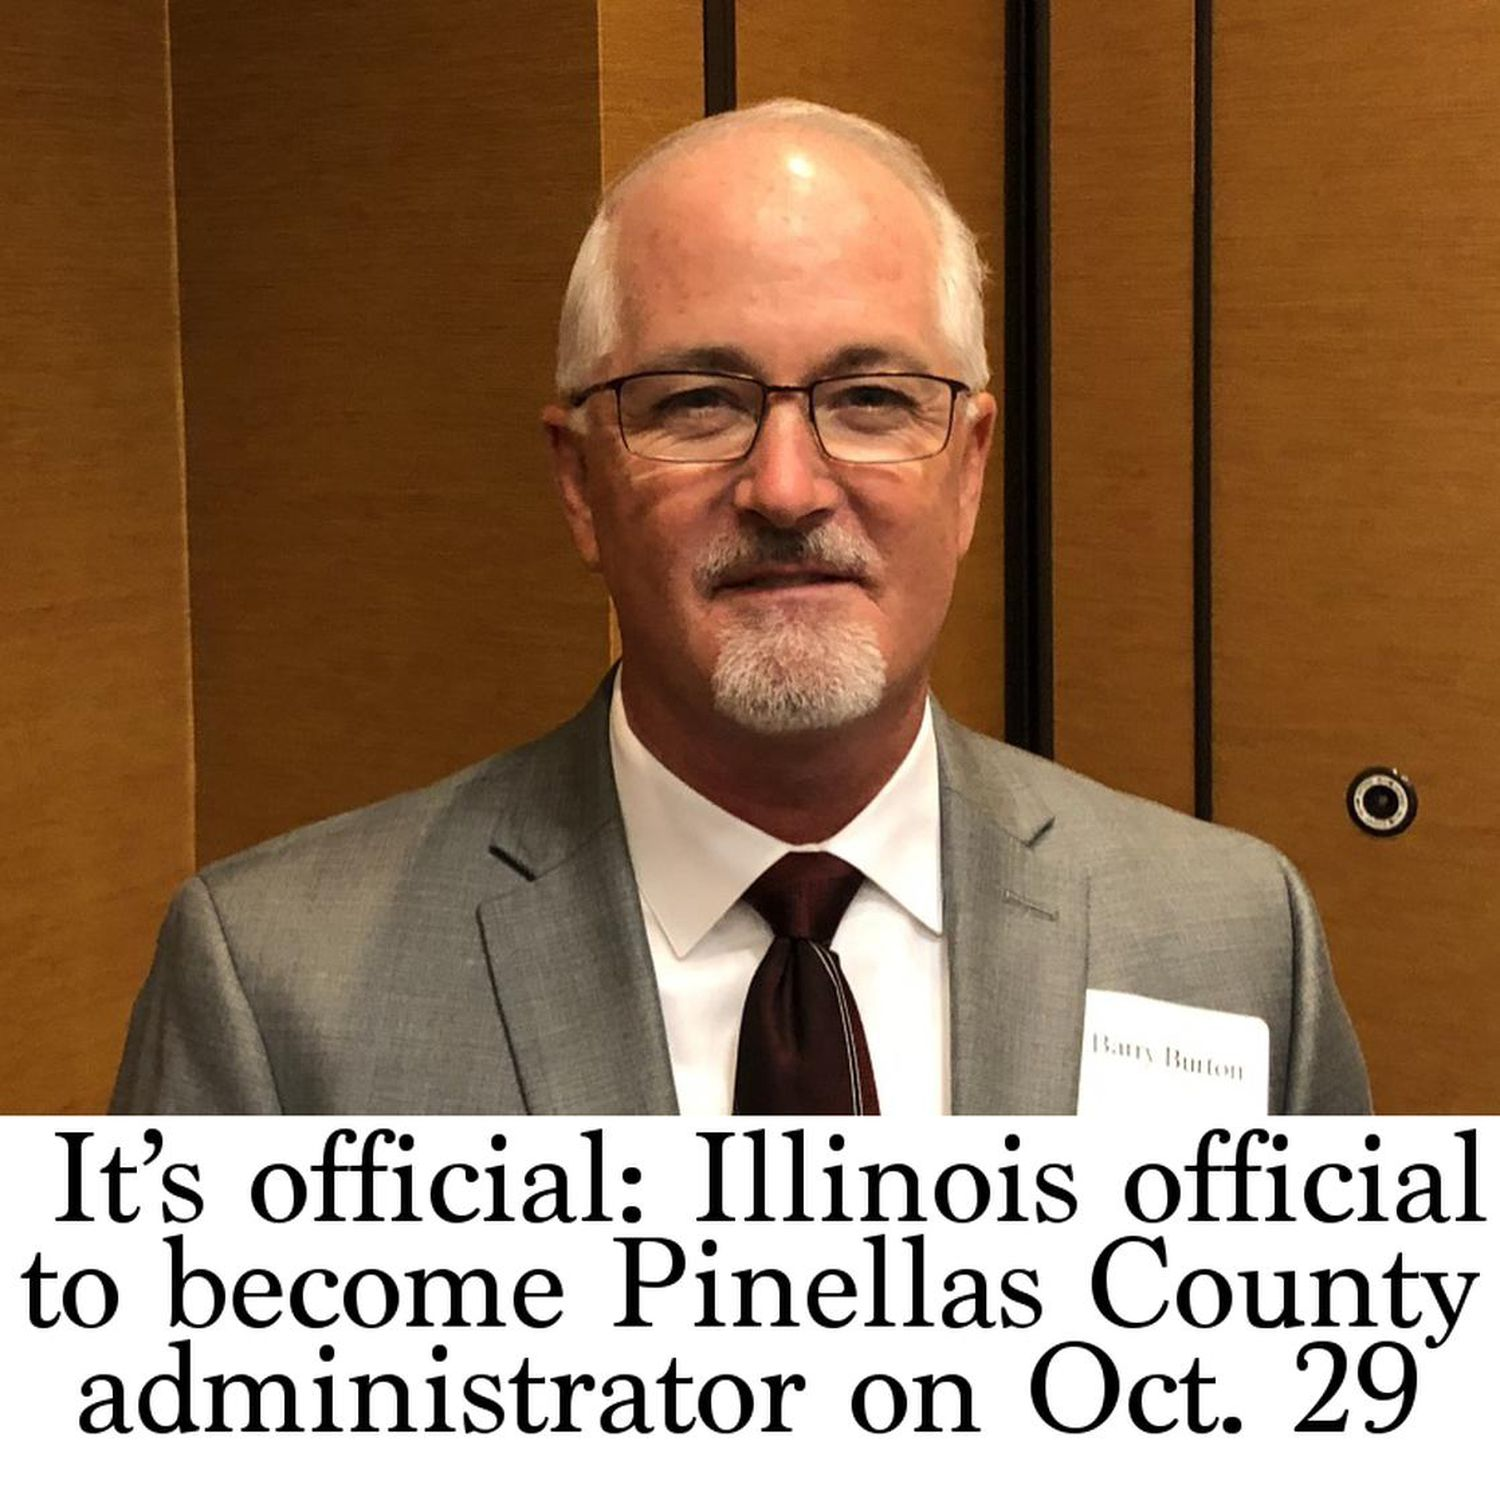 It's official: Illinois official to become Pinellas County